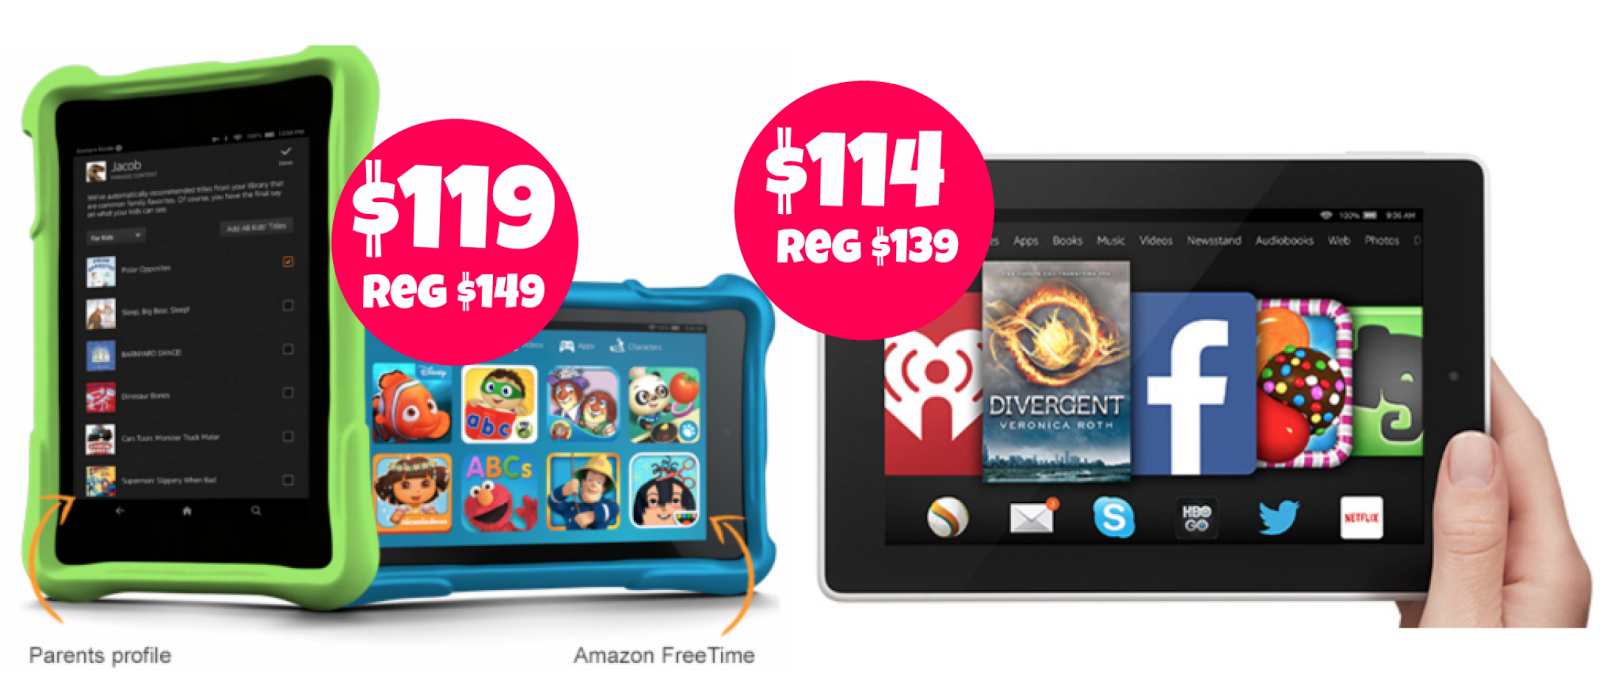 http://www.thebinderladies.com/2014/12/amazon-fire-hd-kids-edition-tablet-as.html#.VISgK4fduyM